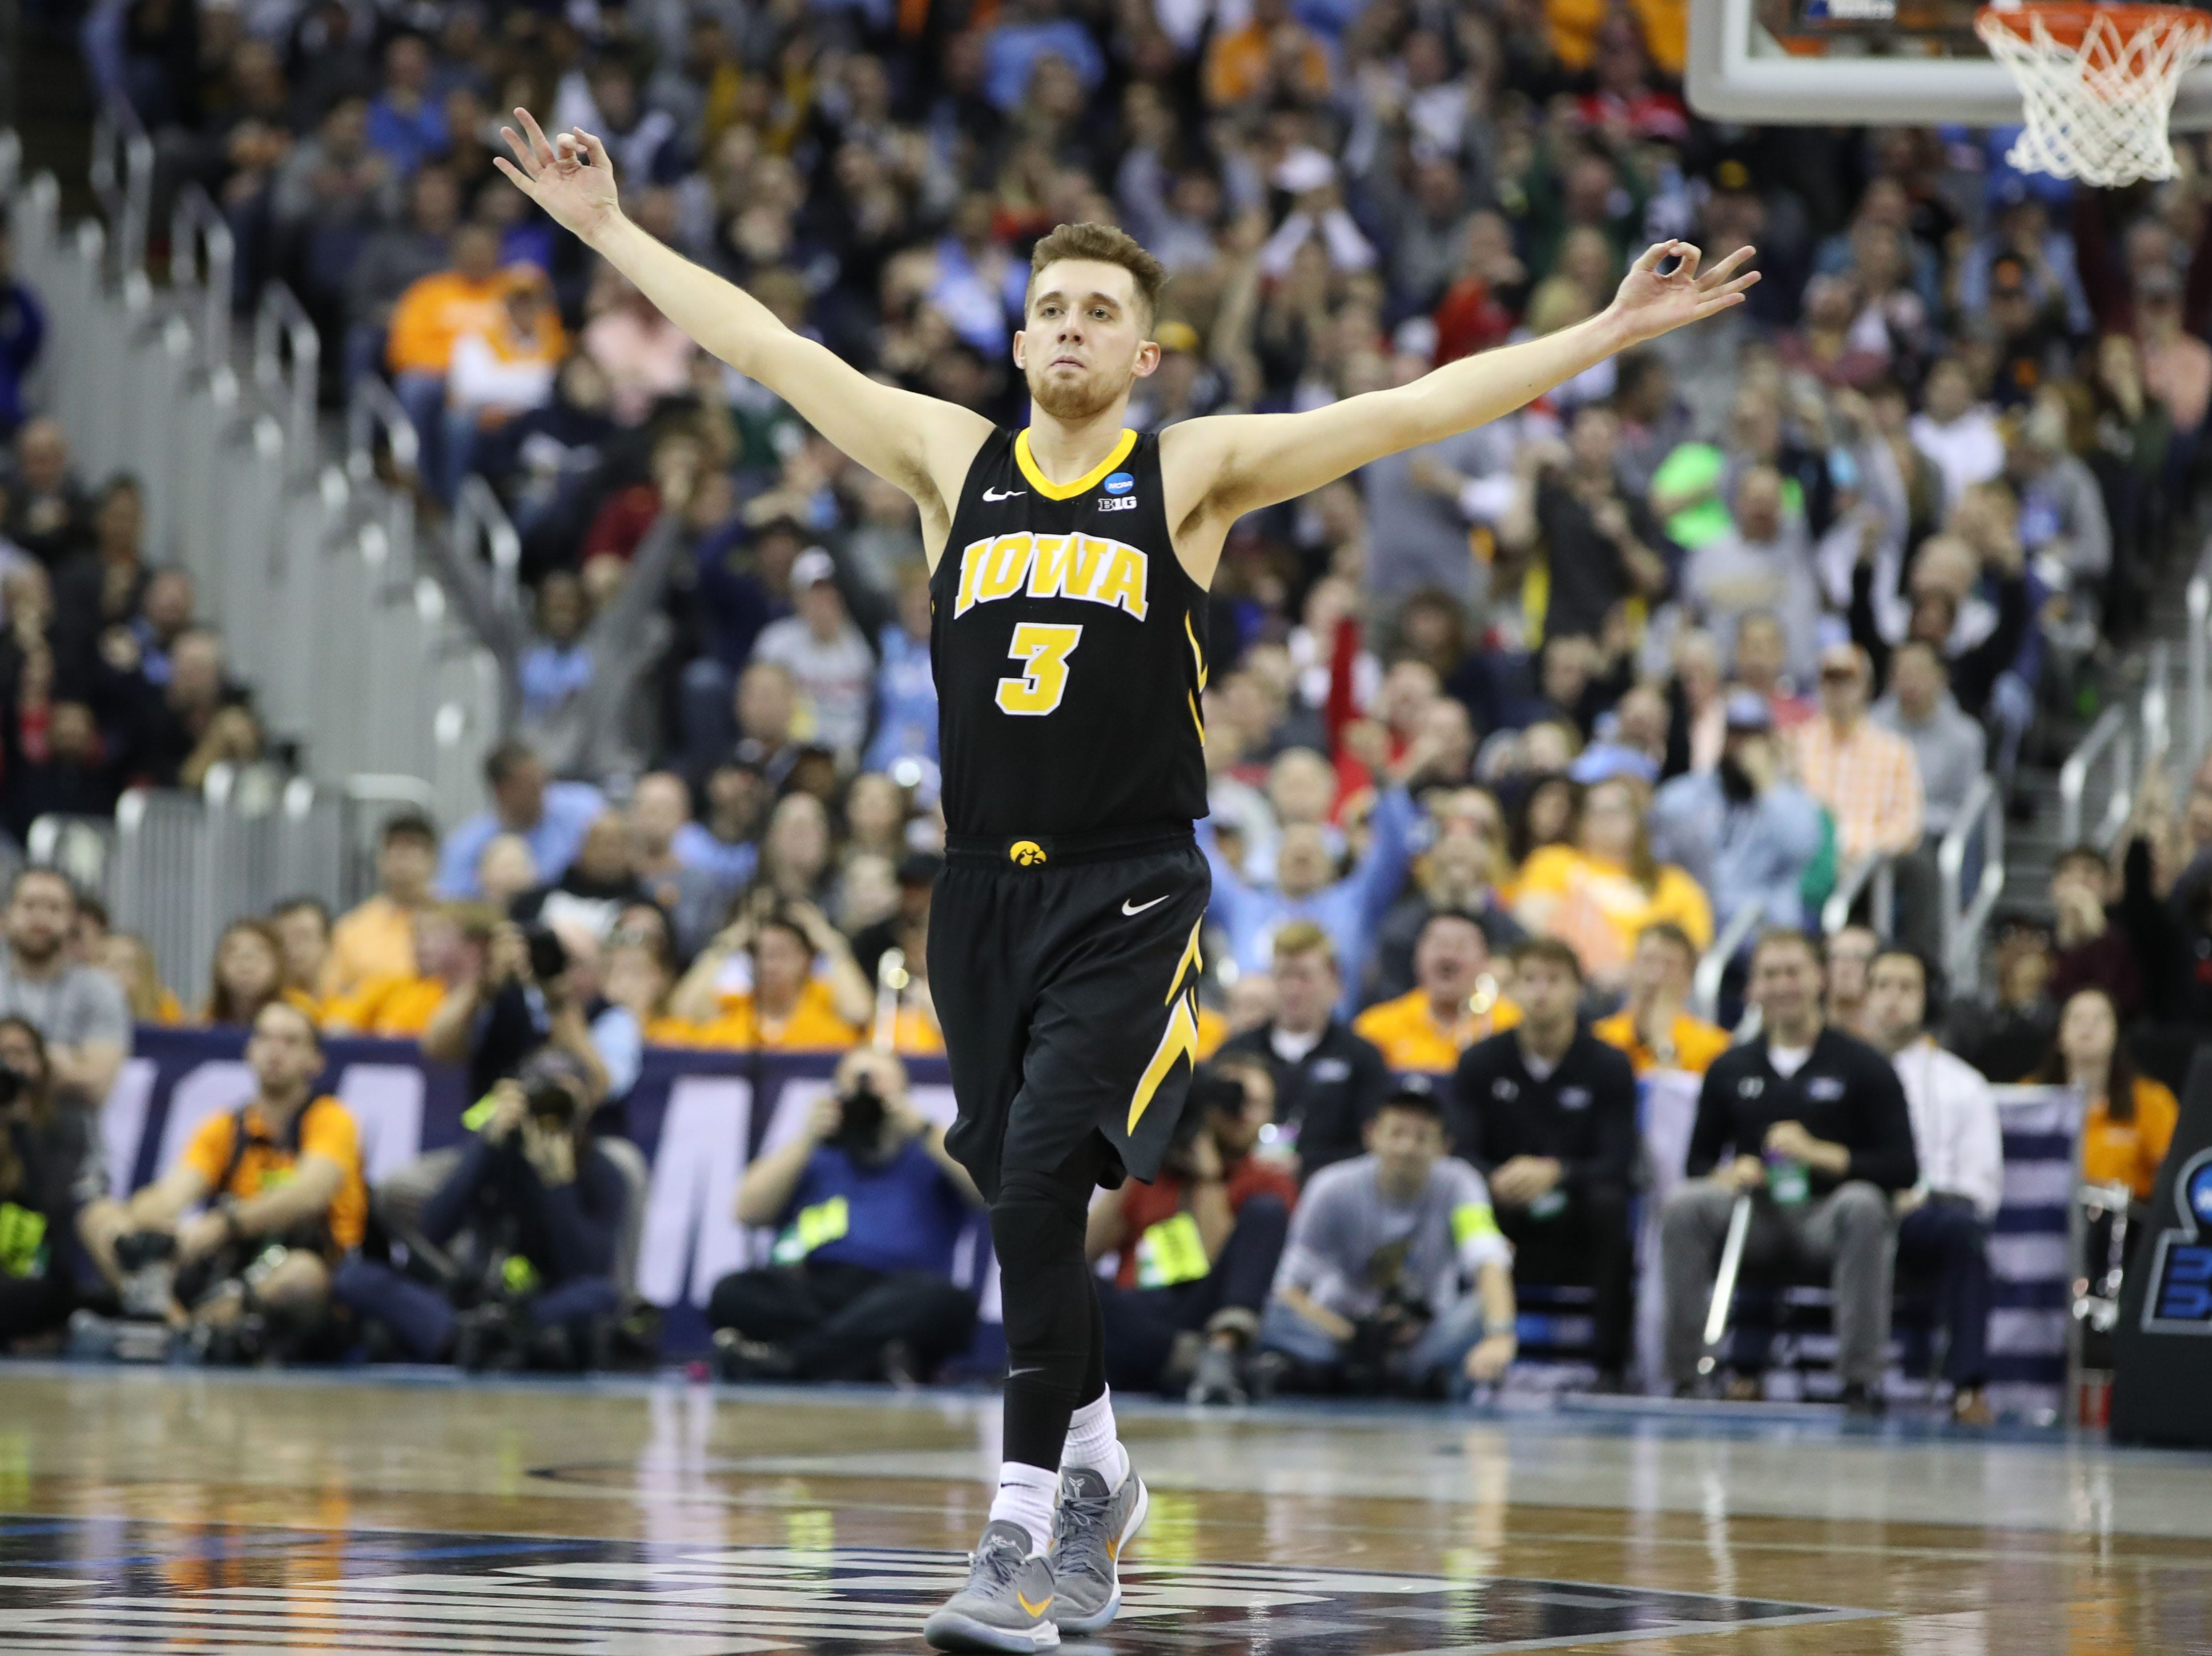 Iowa Hawkeyes guard Jordan Bohannon (3) celebrates a play in the second half against the Tennessee Volunteers in the second round of the 2019 NCAA Tournament at Nationwide Arena.